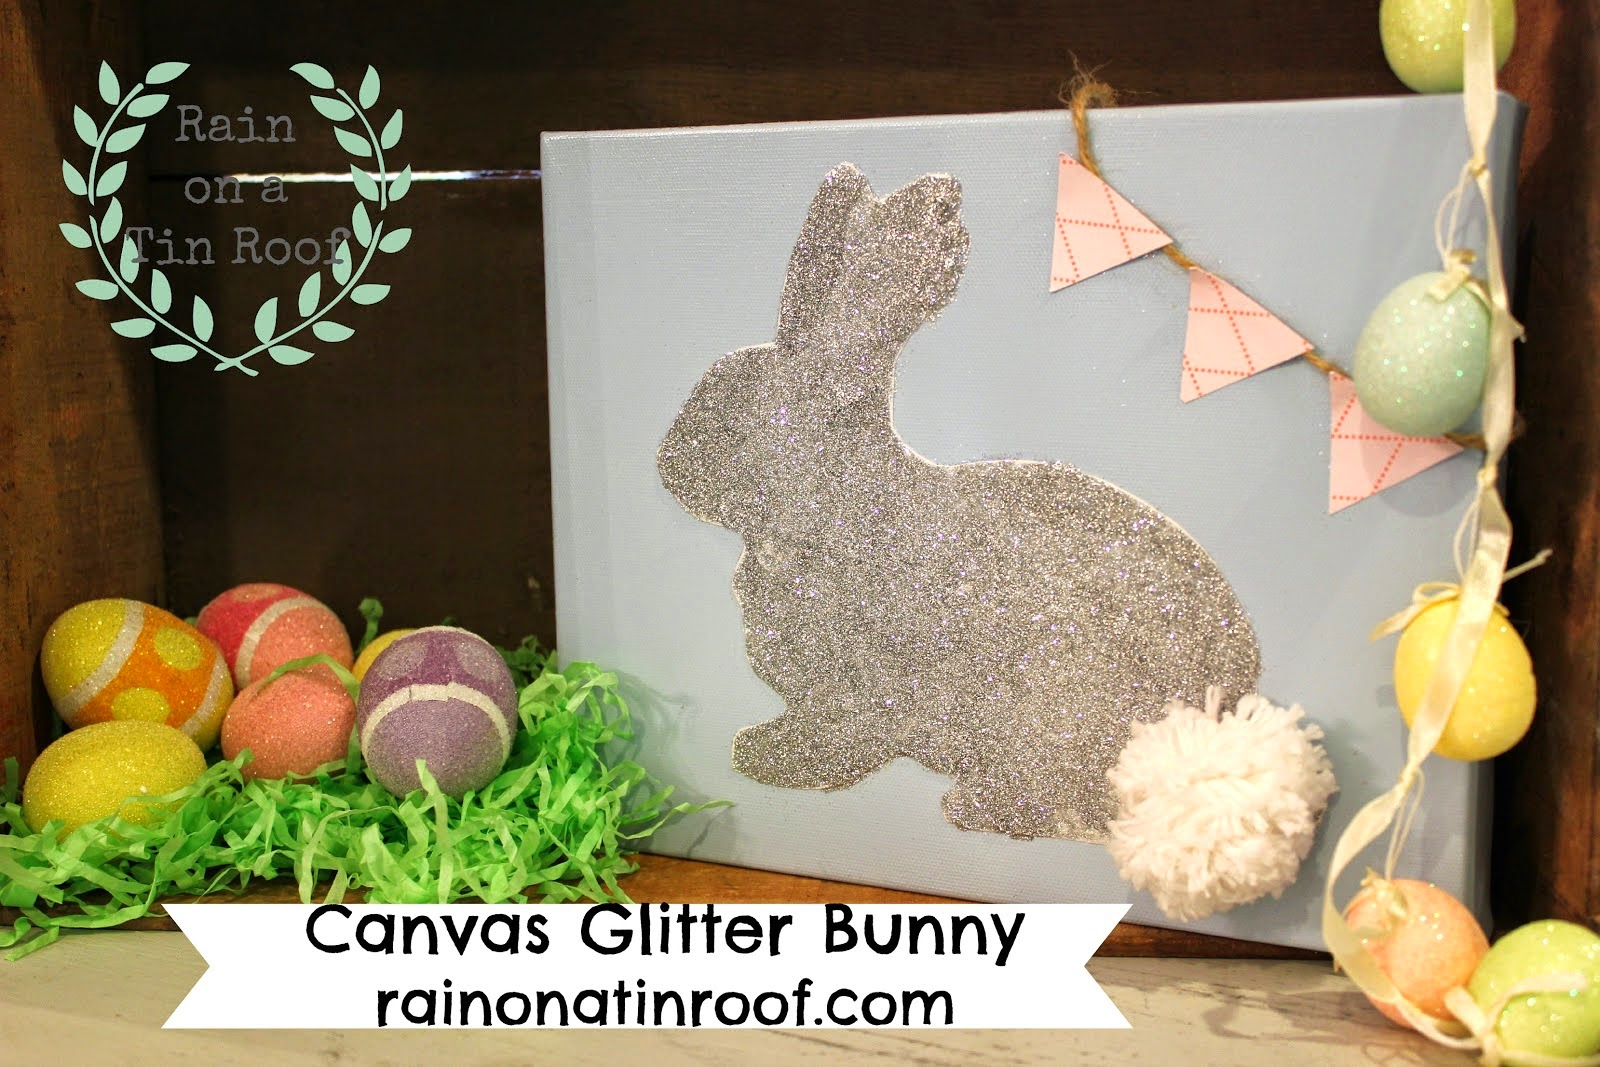 A glitter bunny with a wool cotton tail.